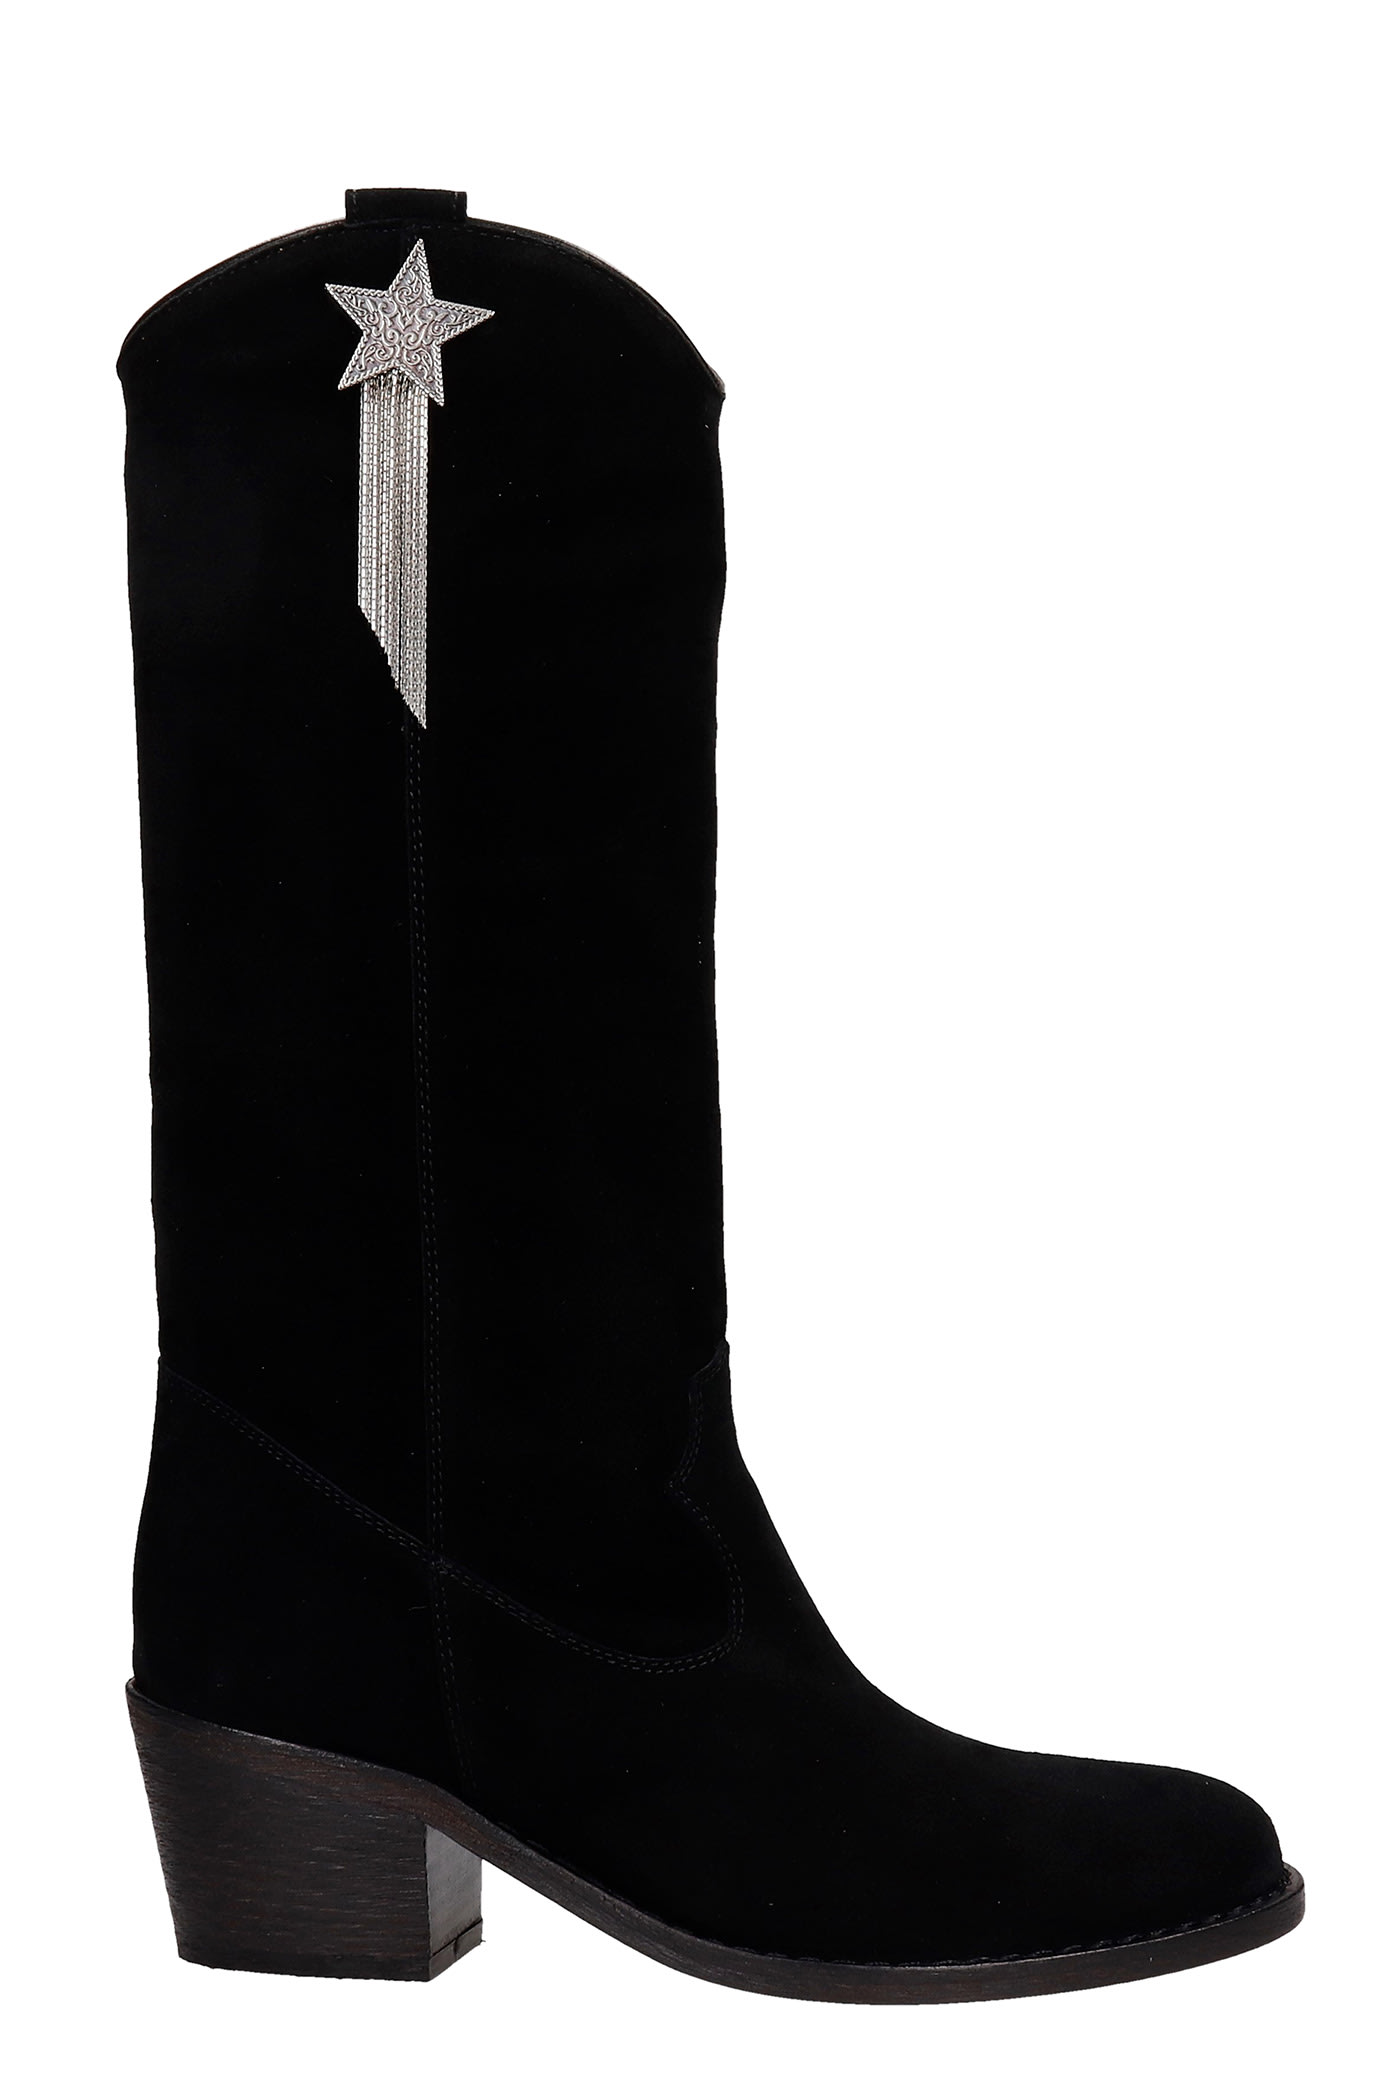 Via Roma 15 Texan Boots In Black Suede